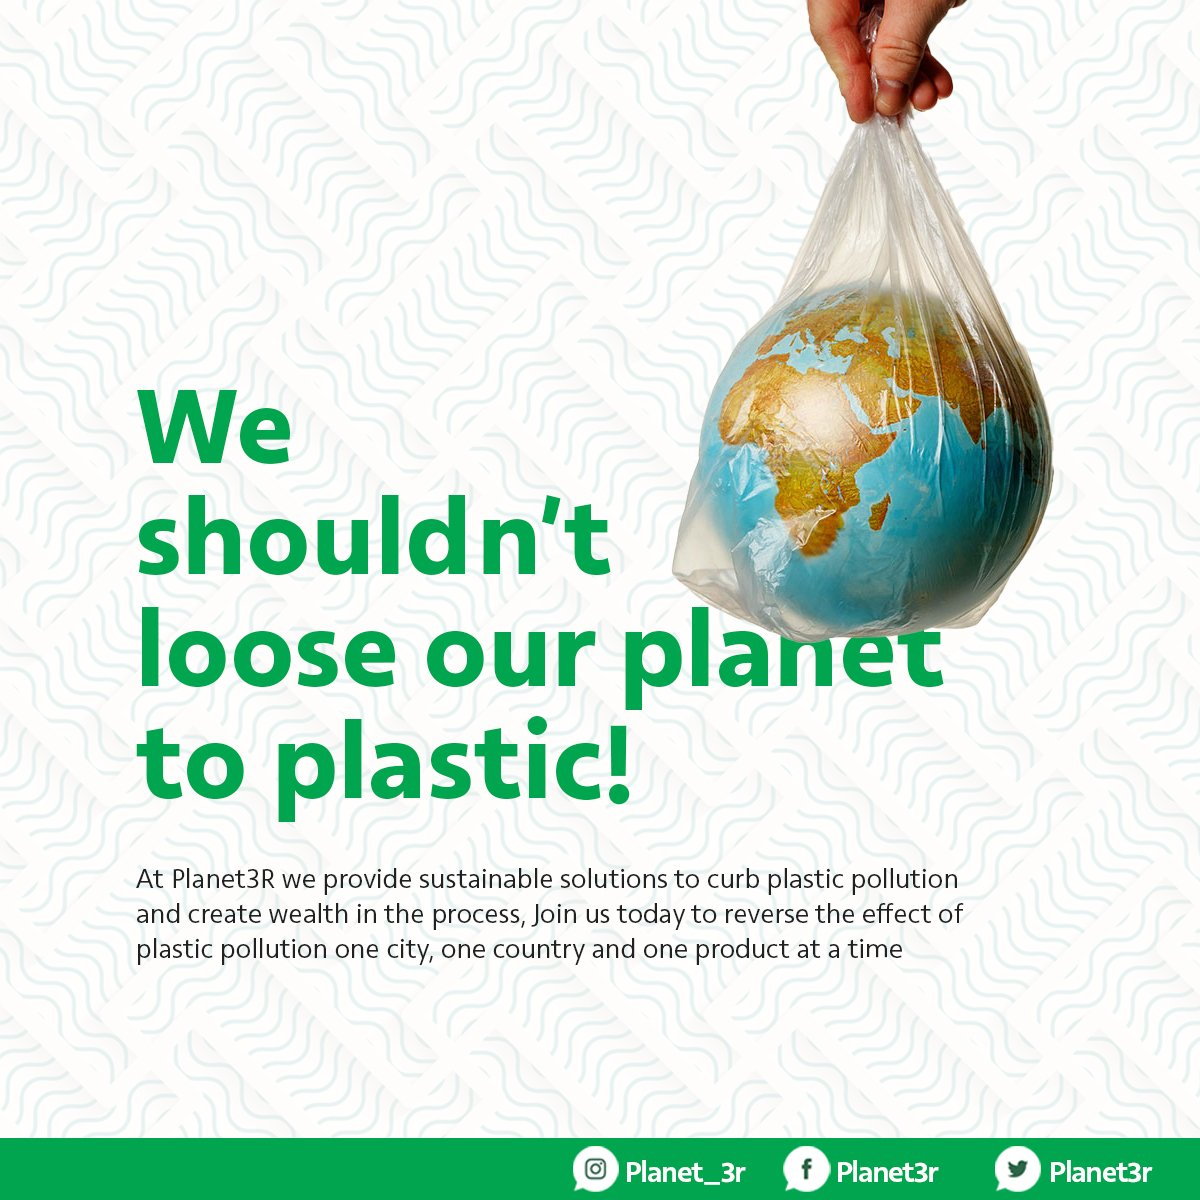 Is your organization interested in finding a project in sustainability space as a CSR?  Are you looking for a partner on a project to end plastic pollution?  Do you want to partner with us to train communities & schools in upclying & recycling? If yes, kindly send us an email! RT